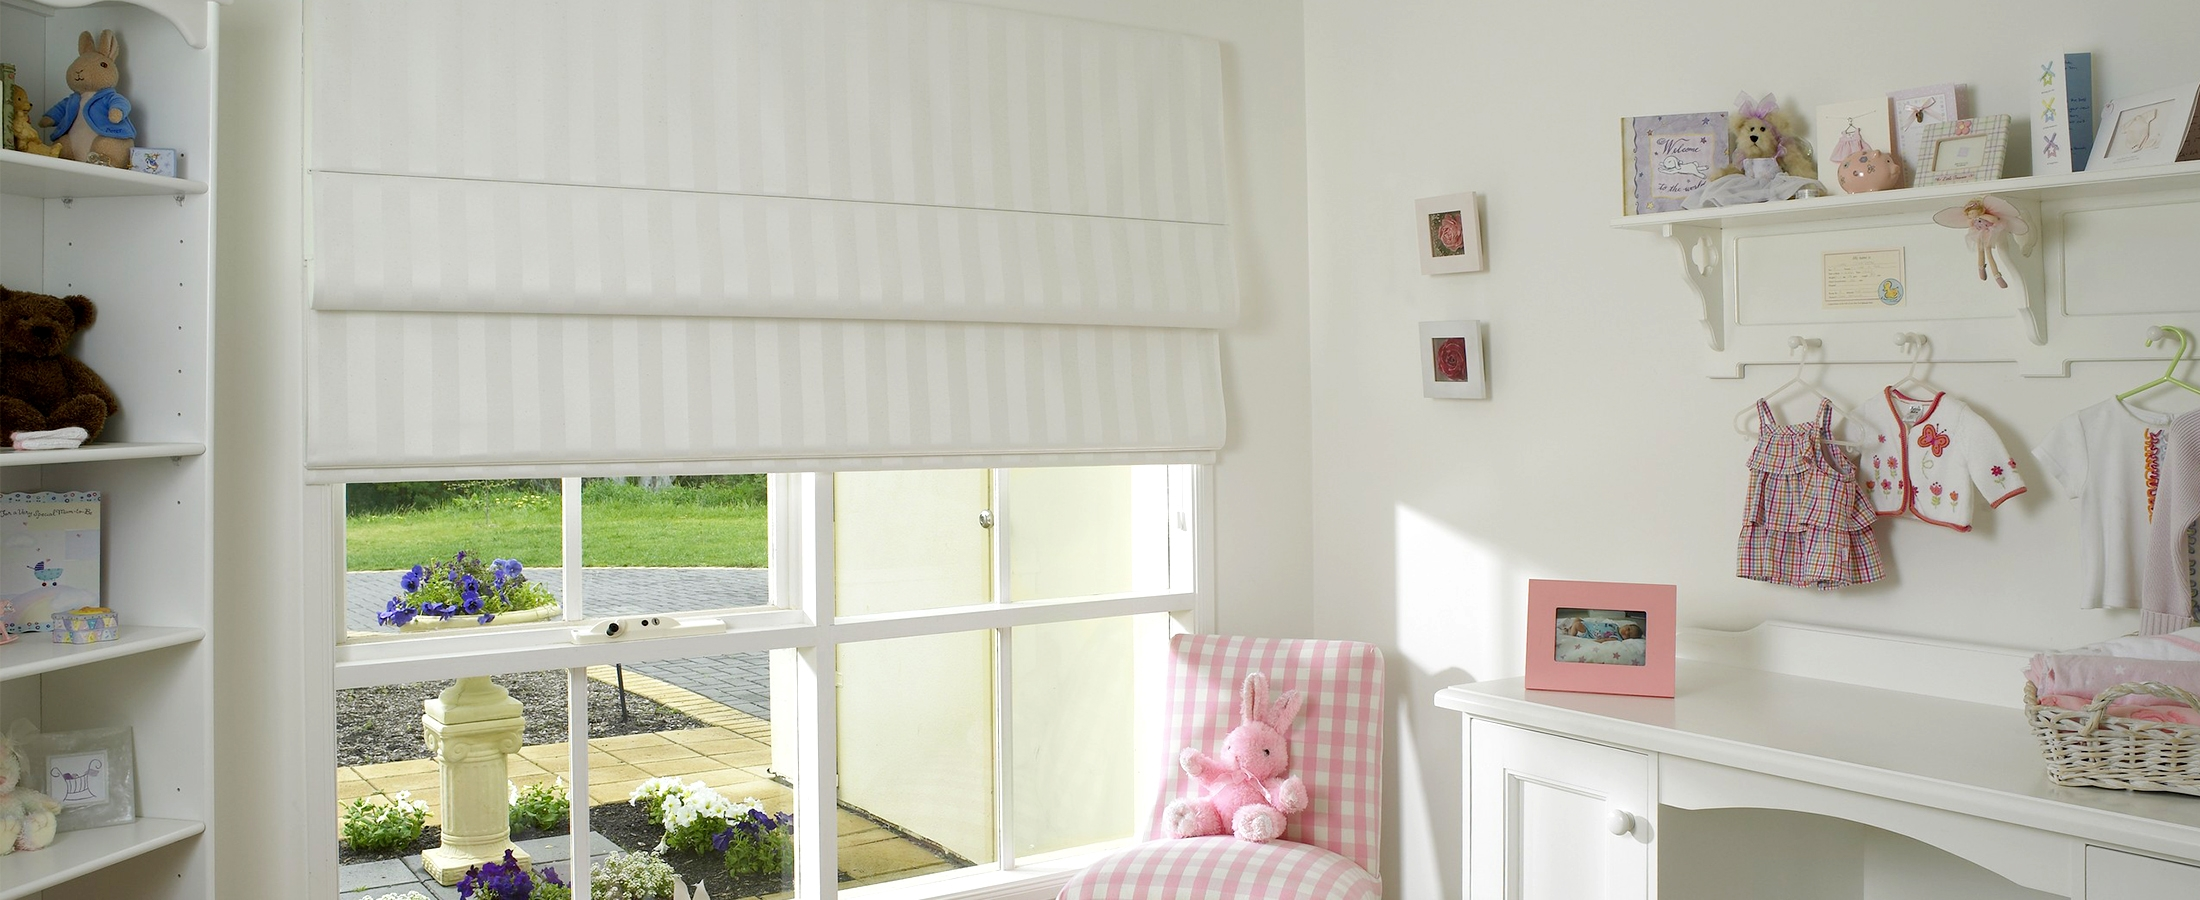 Superior Roman Blinds Perth Abc Blinds Biggest Best For Kids Roman Blinds (Image 14 of 15)